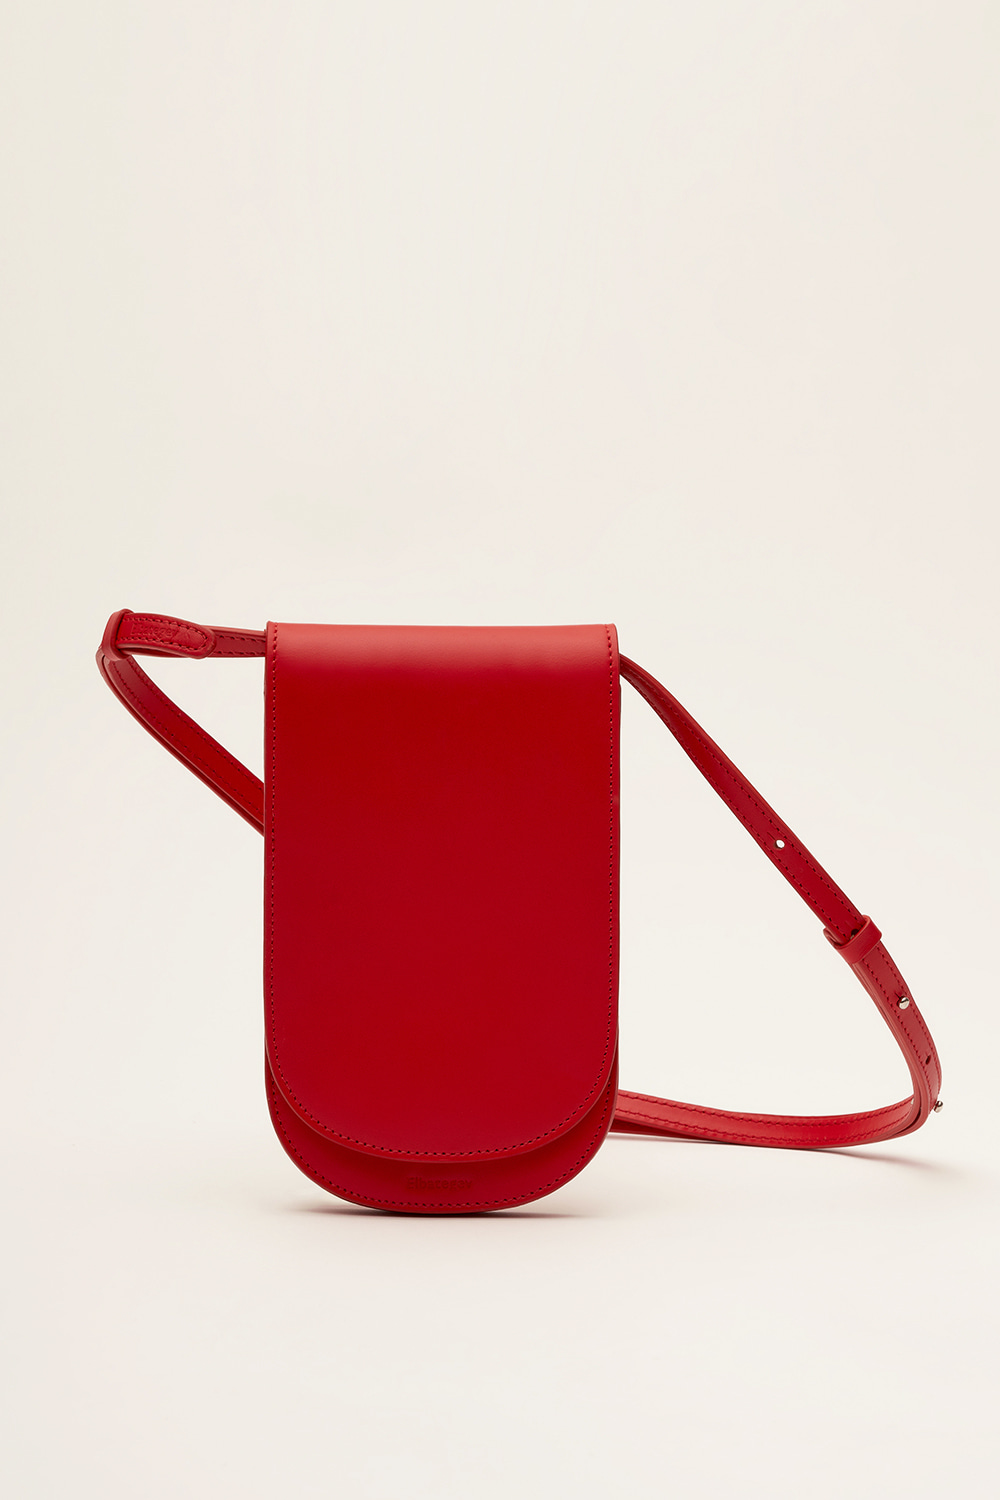 Flat Bag in Berry Red